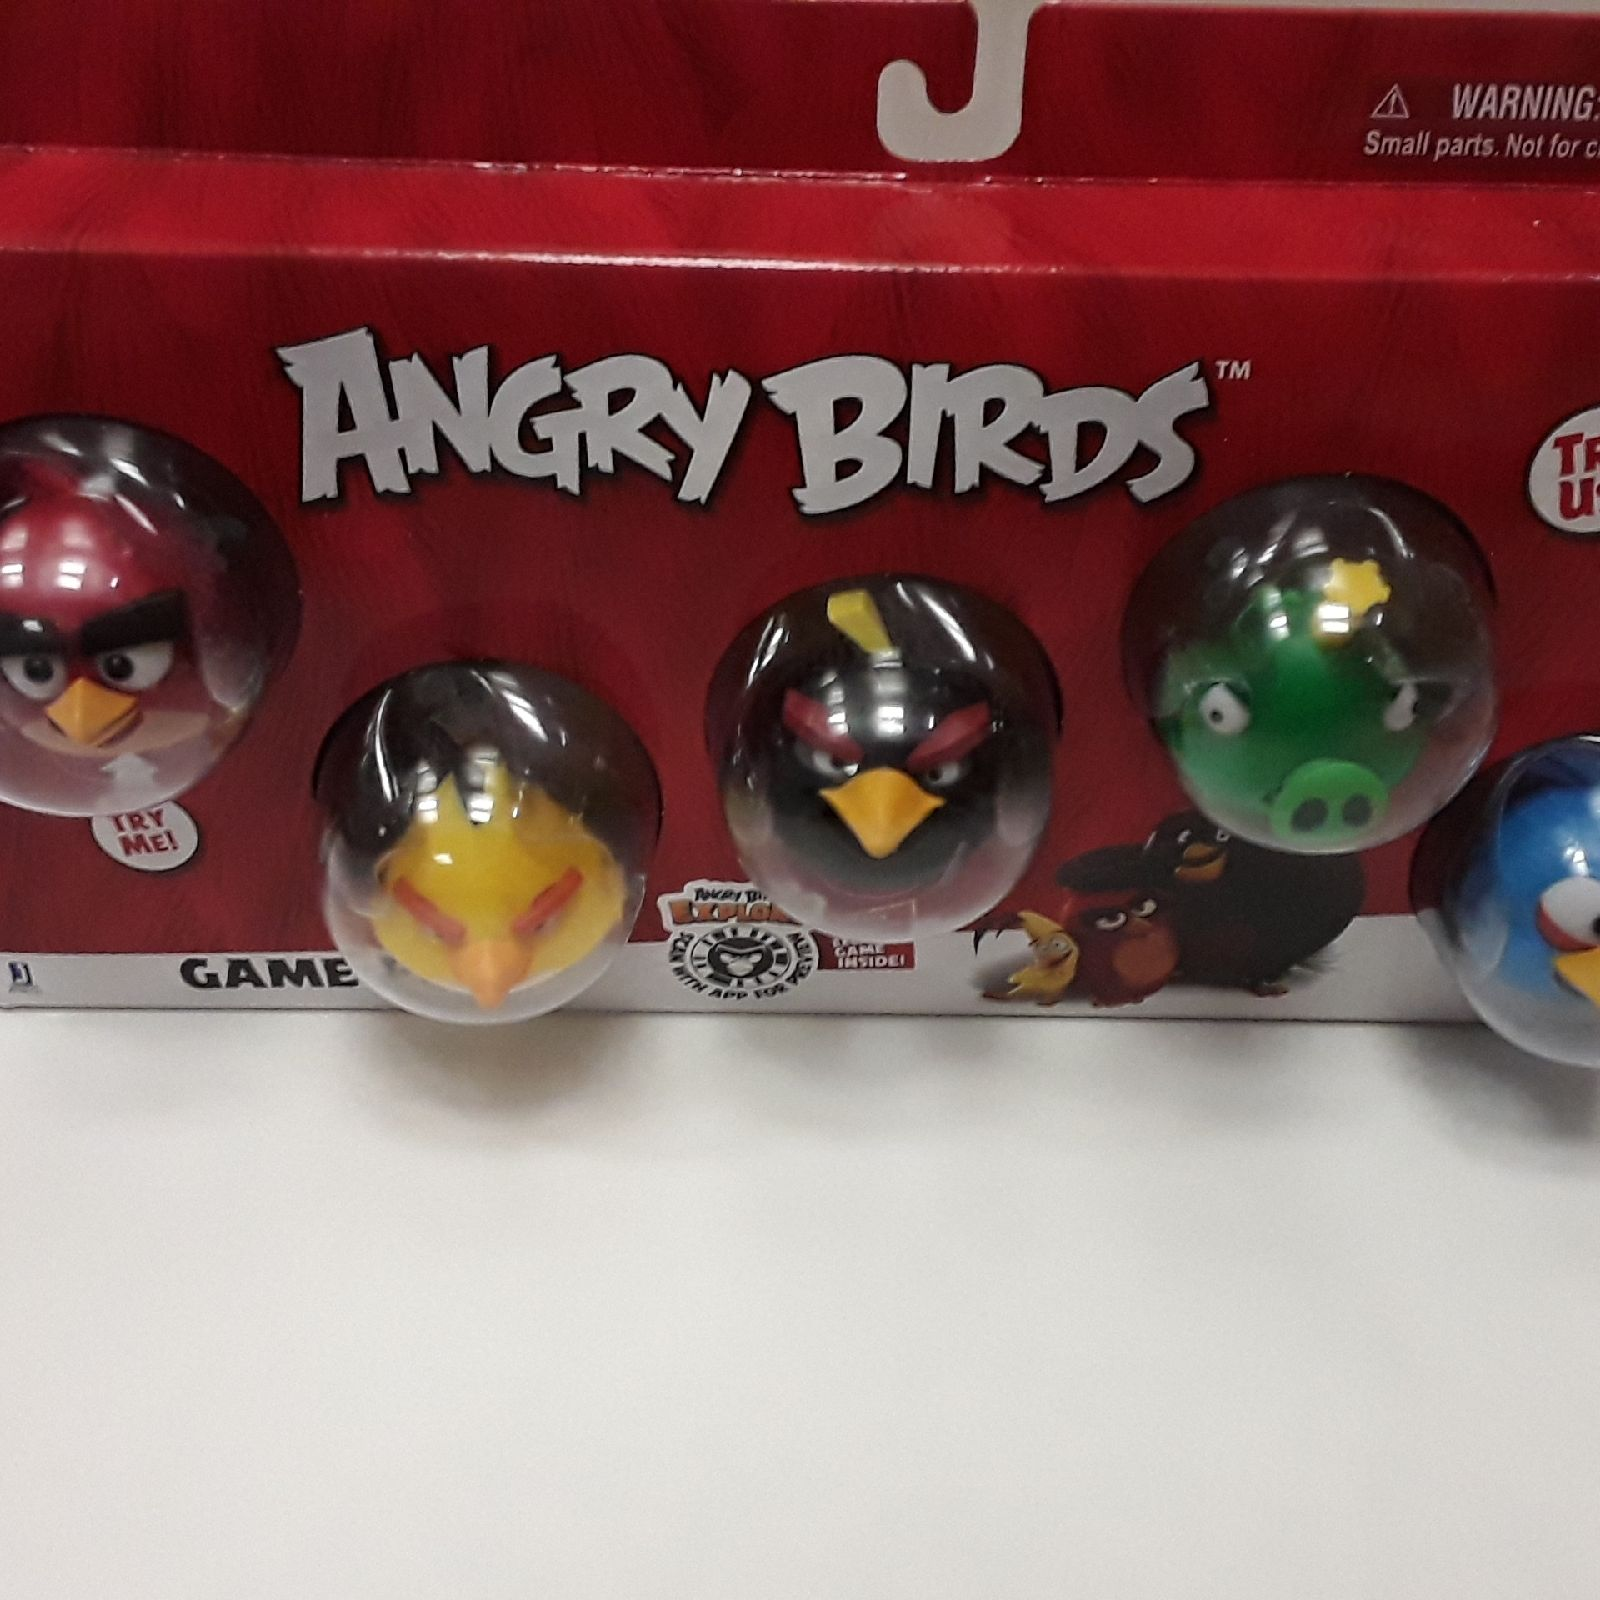 Angry birds Try Us Game Pack